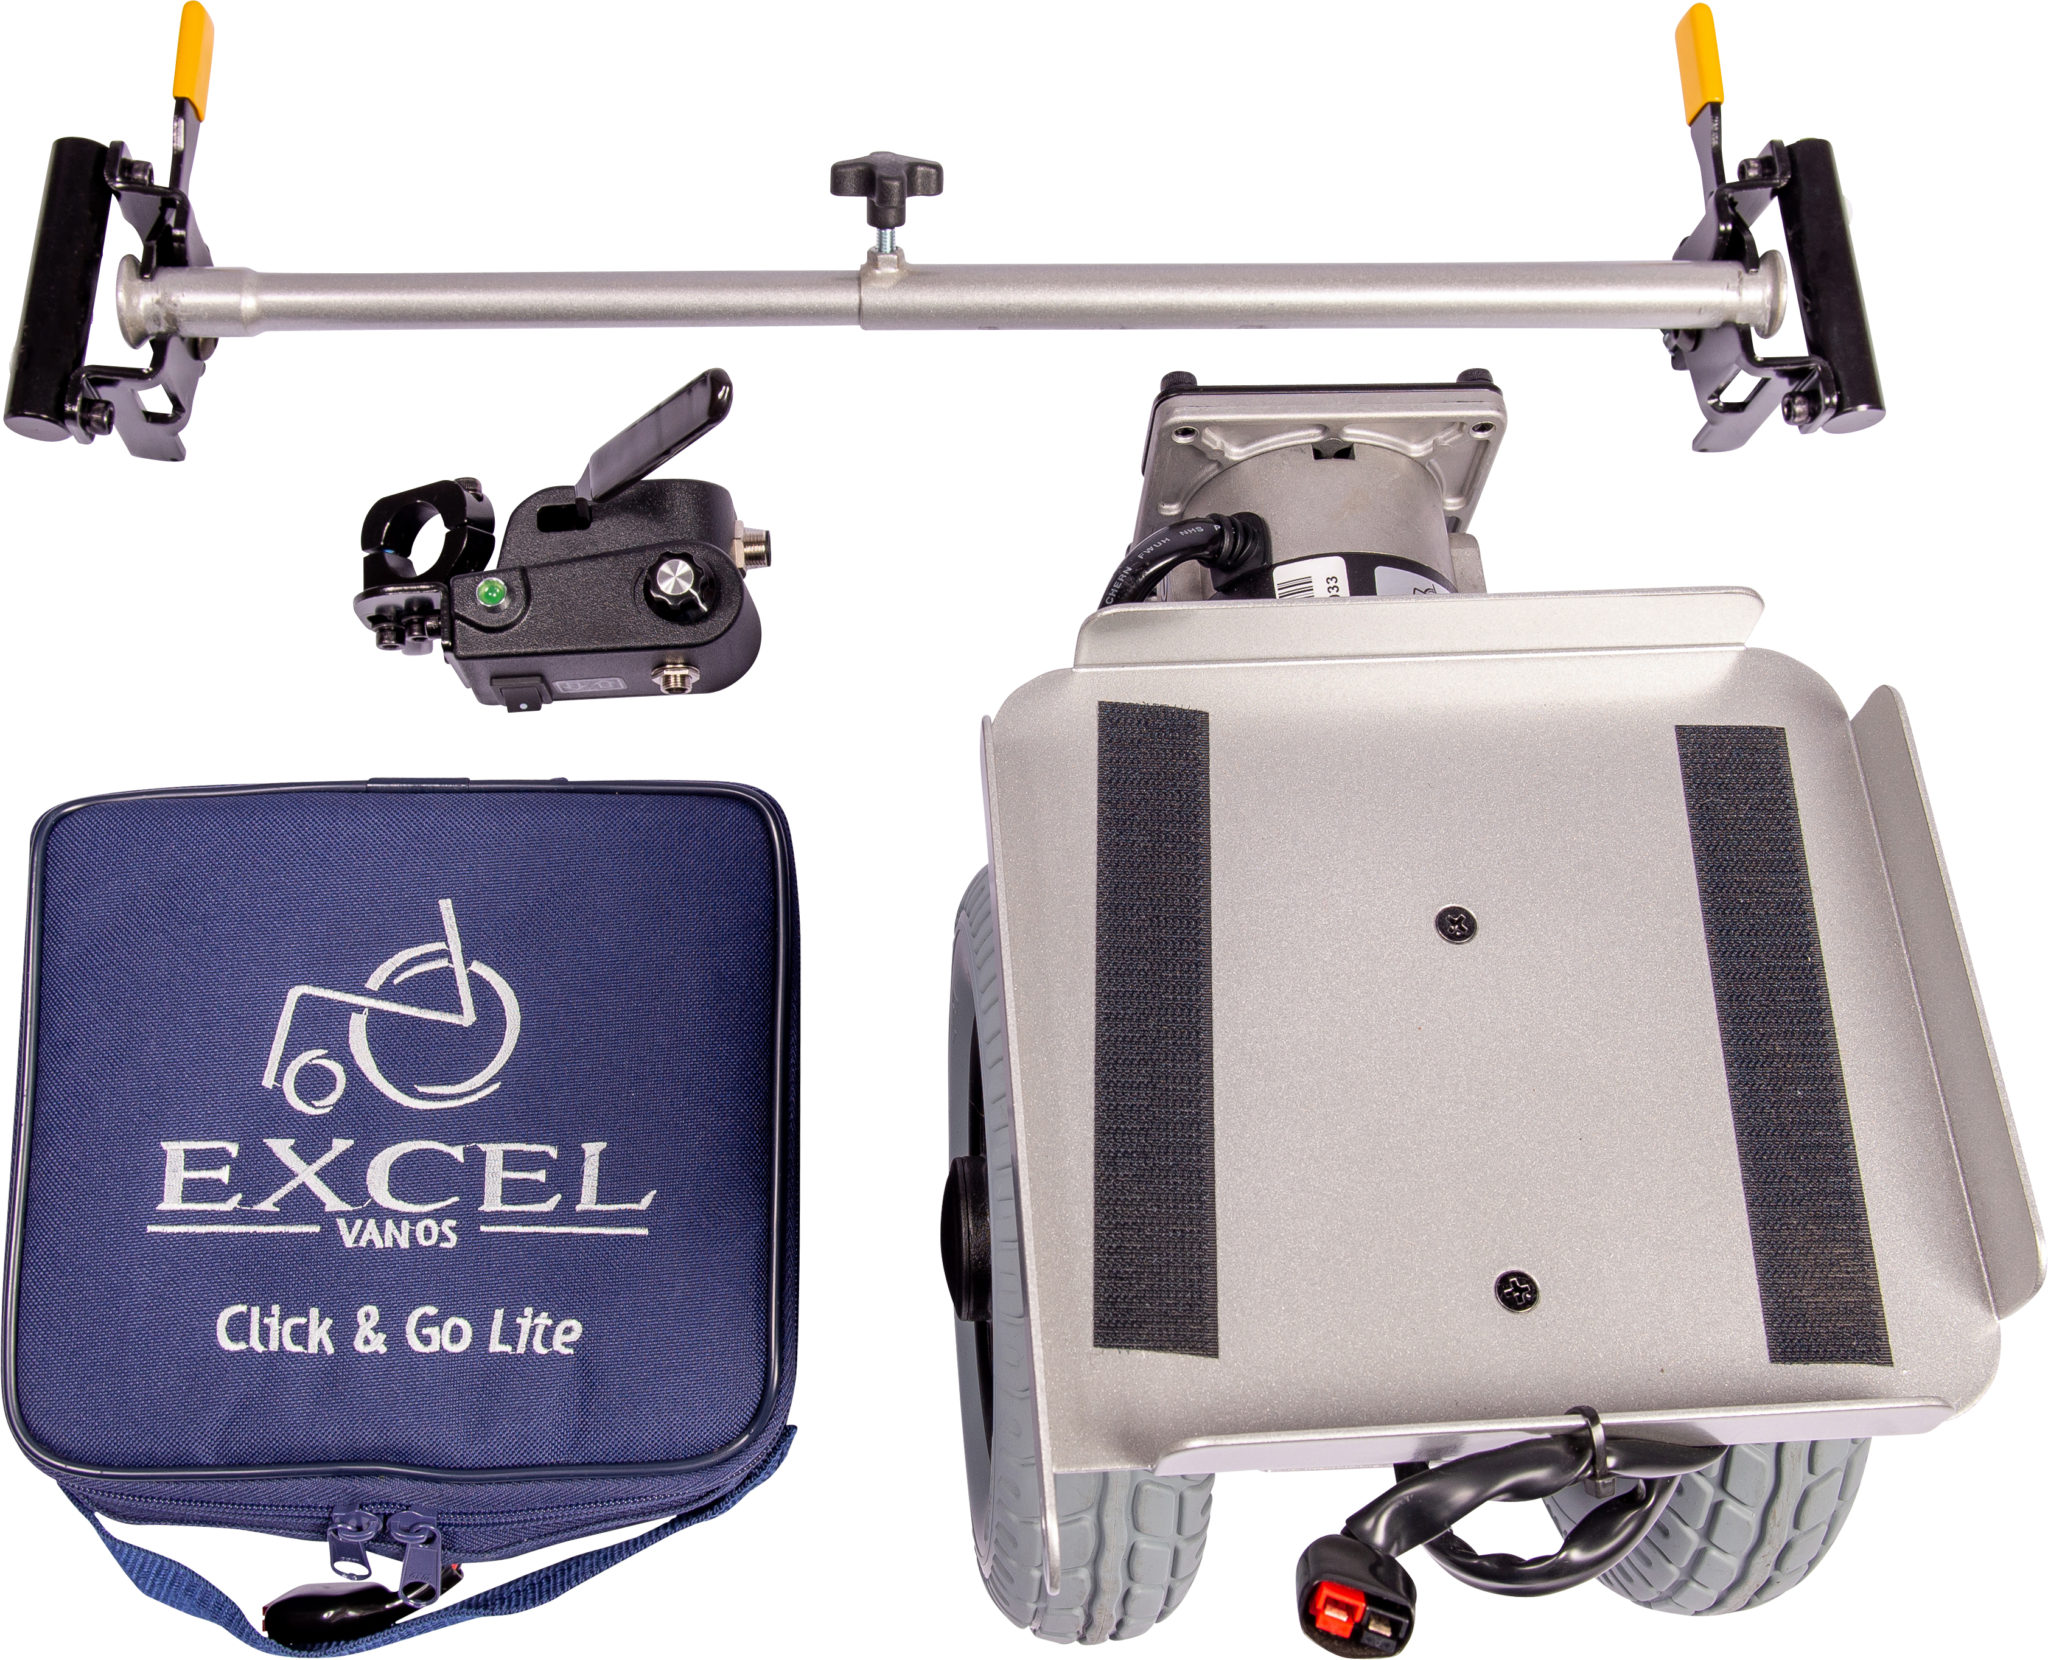 wheelchair-power-attachment-pack-excel-click-go-blue-ExcCliGoLPow-pack-contents.jpg